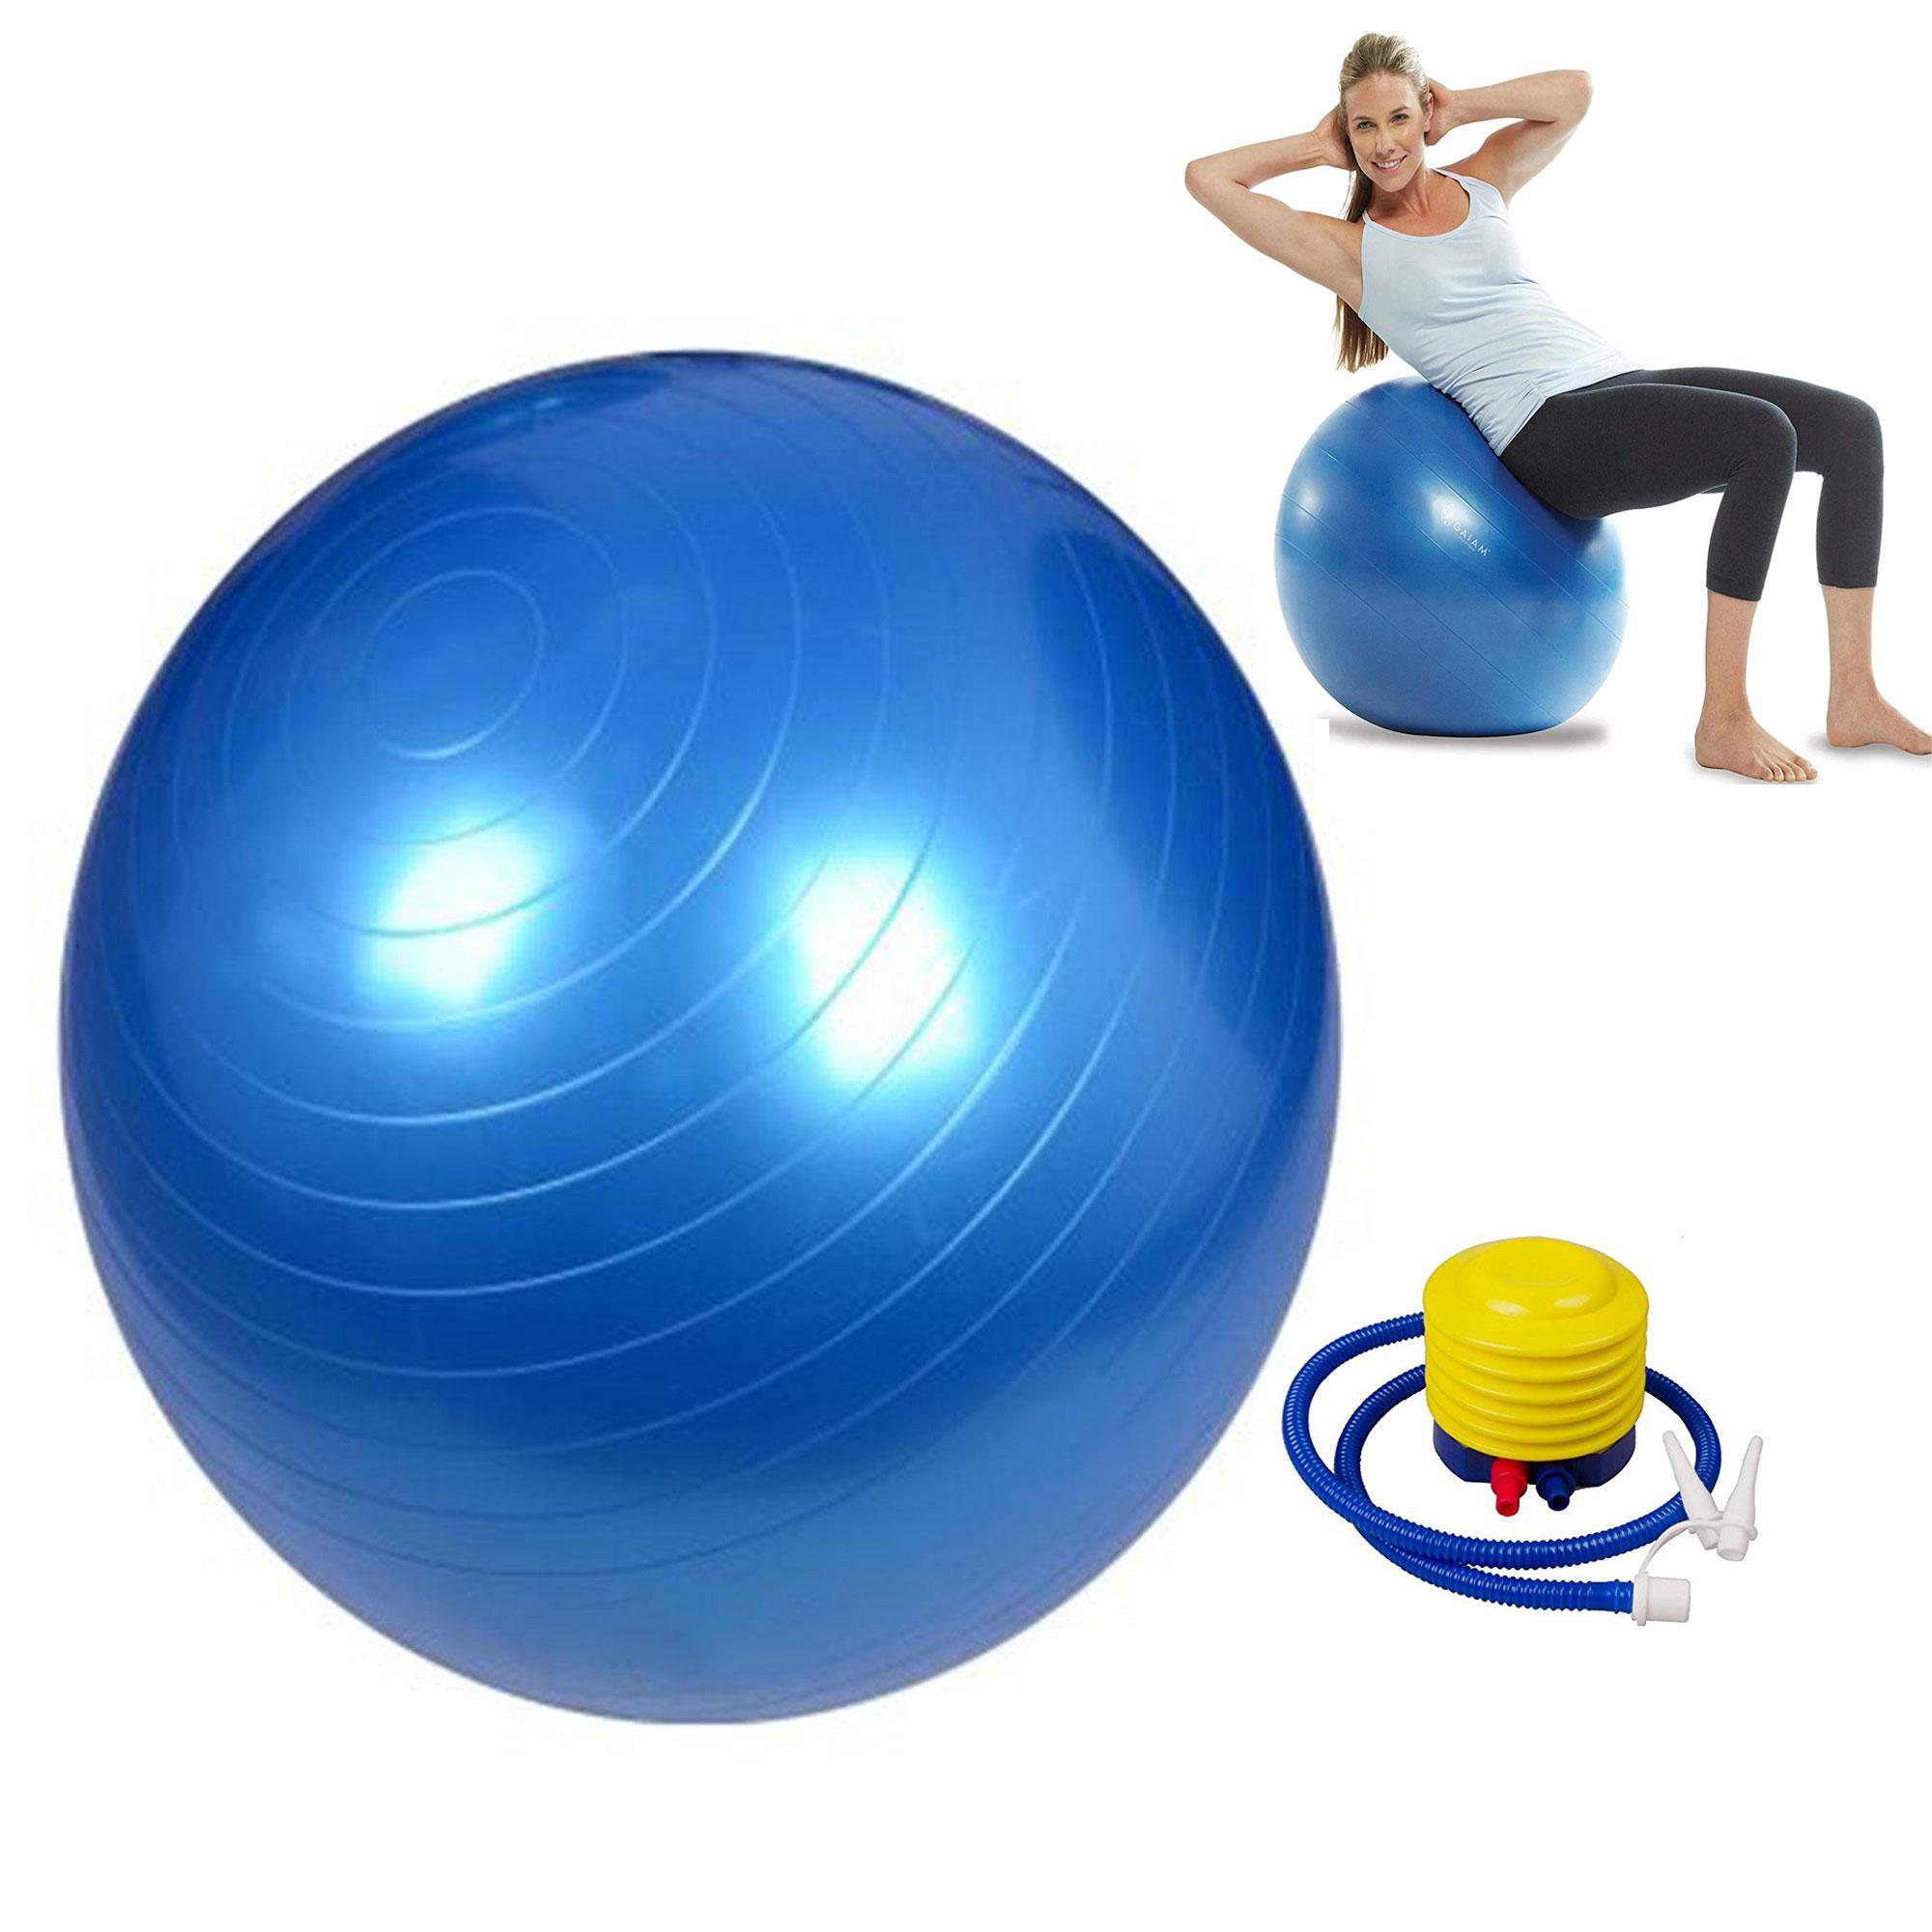 Gym Ball (blue) By Gonzalez General Merchandise.